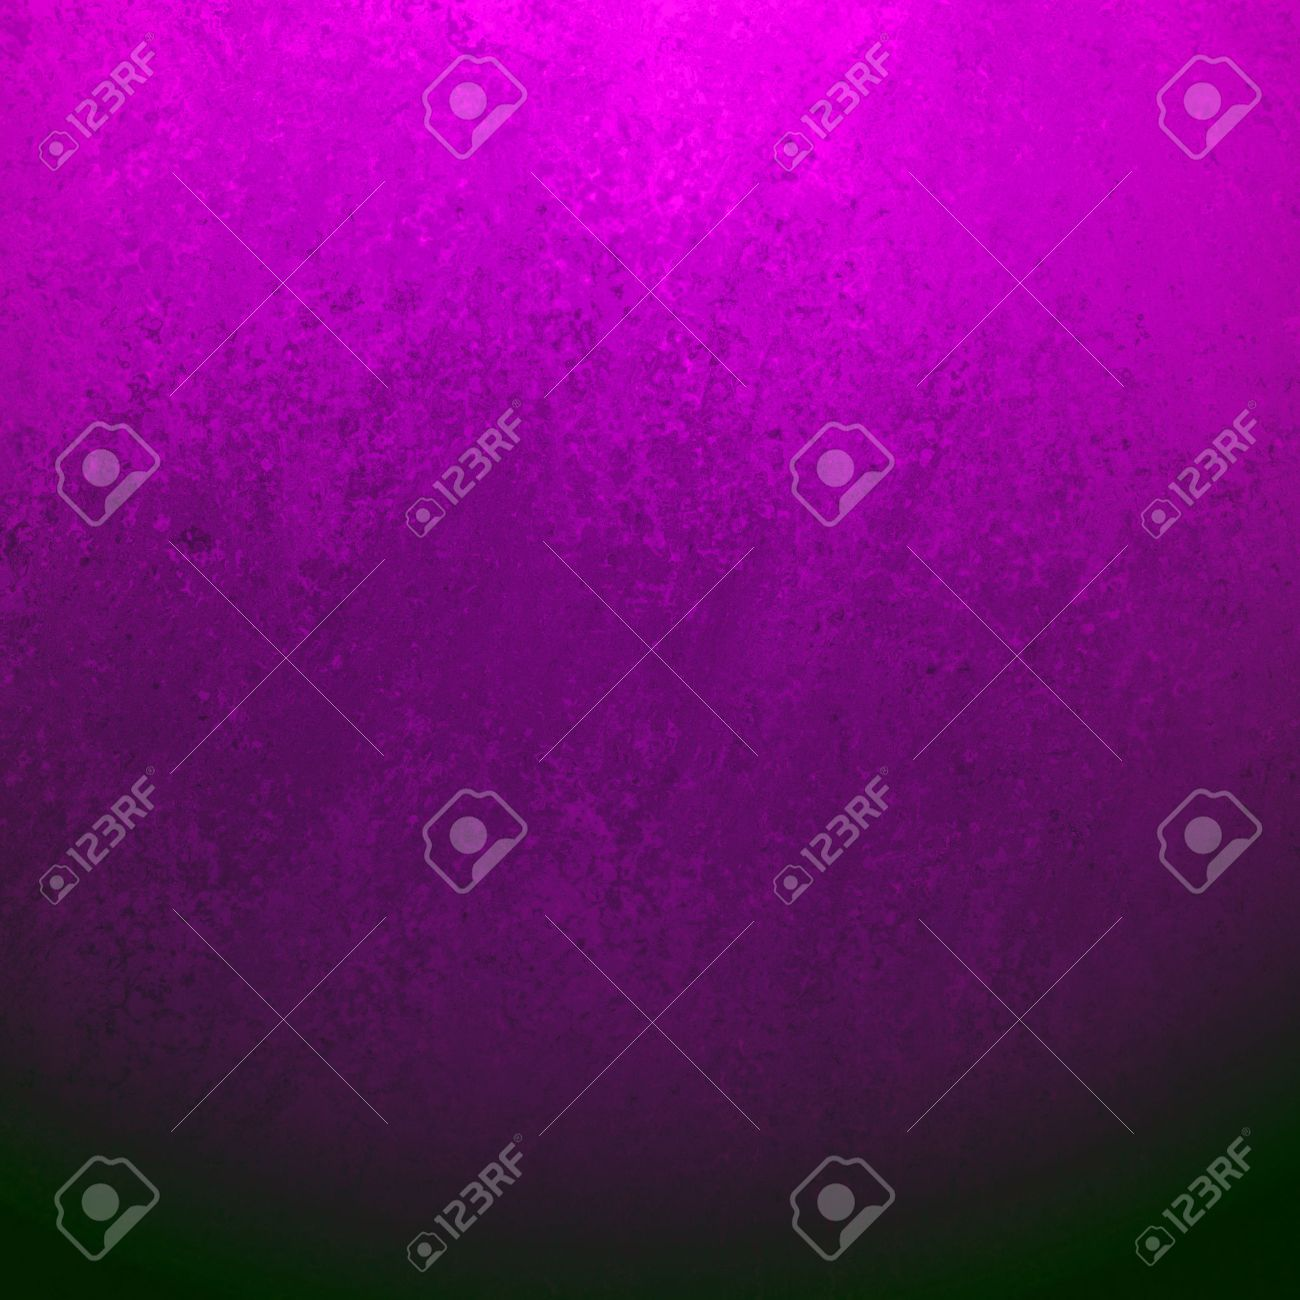 black background with grunge purple pink border texture, gradient bright pink color blended into dark black color, elegant classy background with sponge wall paint texture - 47454413